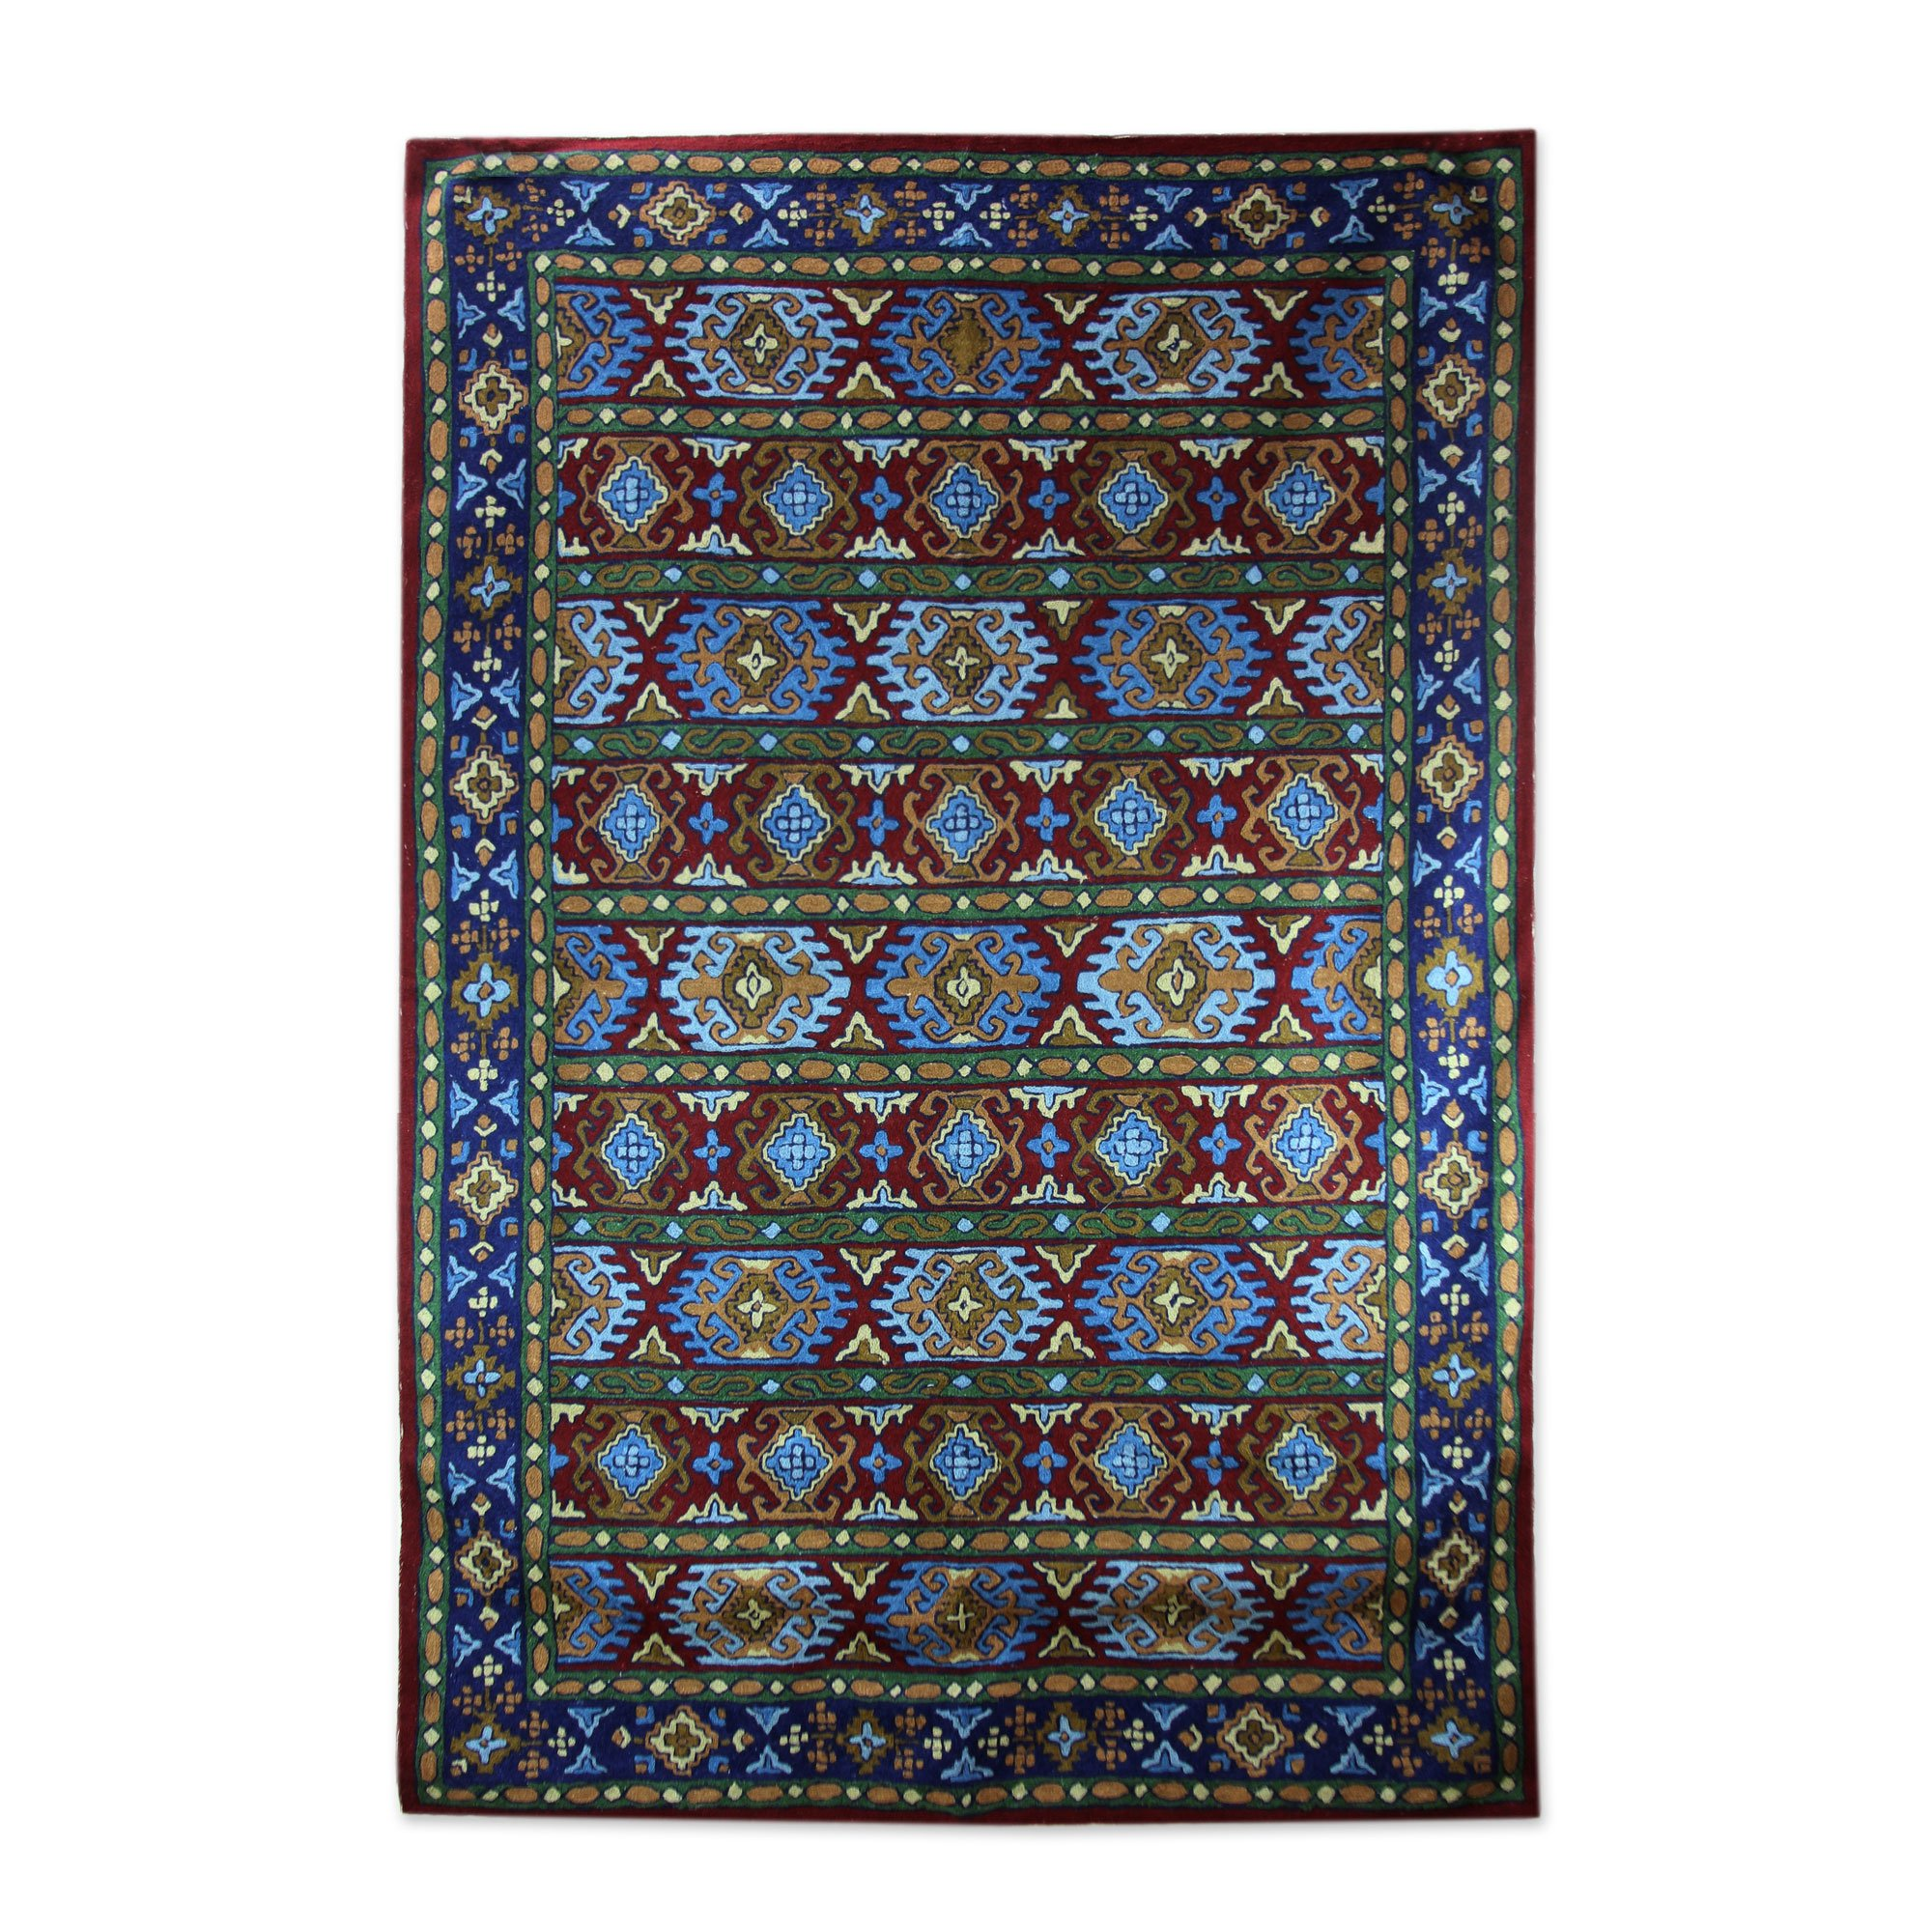 NOVICA 'Blue Tile Palace' India Aari Rug Chain Stitched Wool on Cotton (4 x 6)